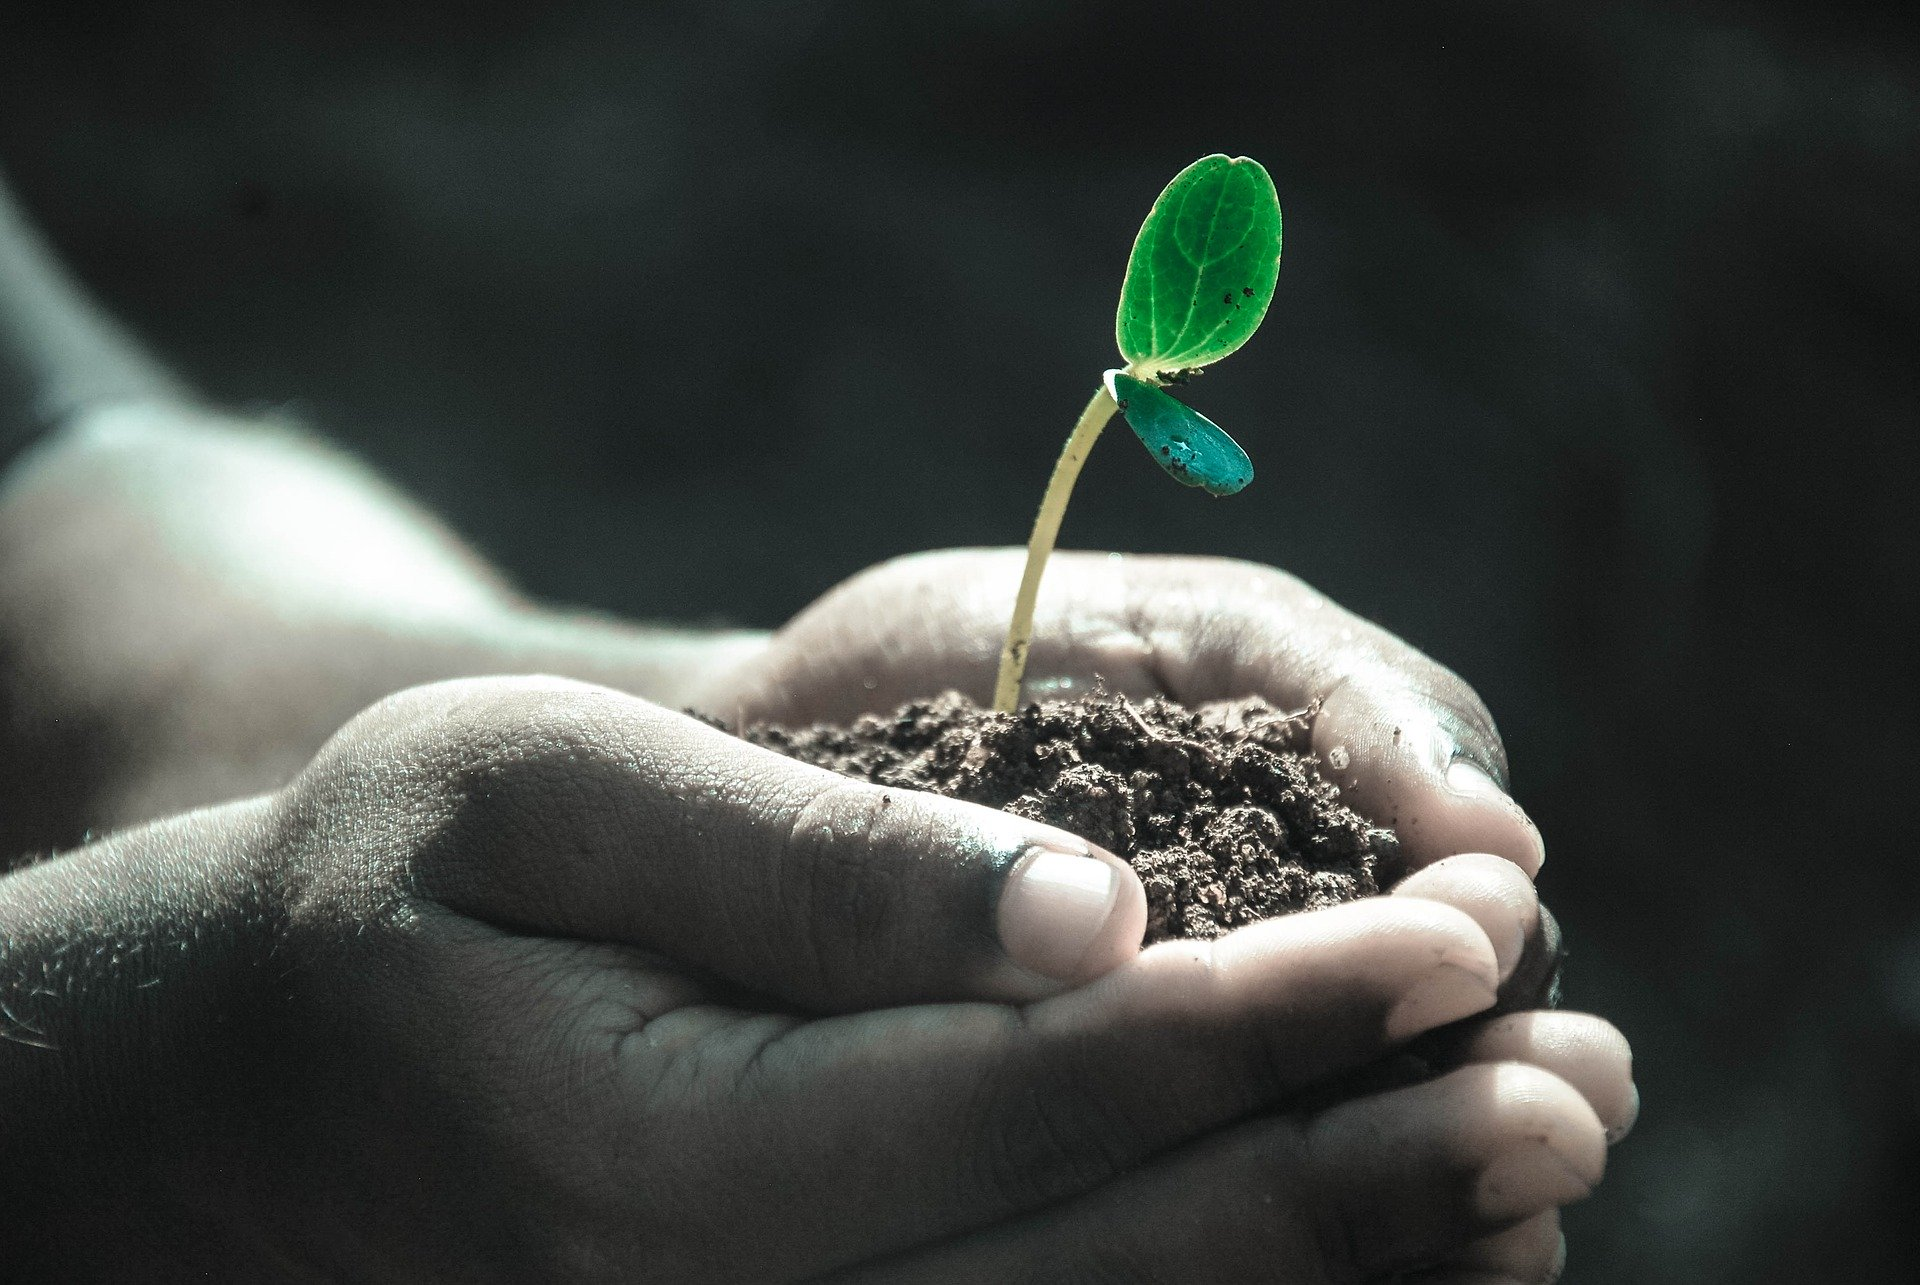 Hand holding a seedling.